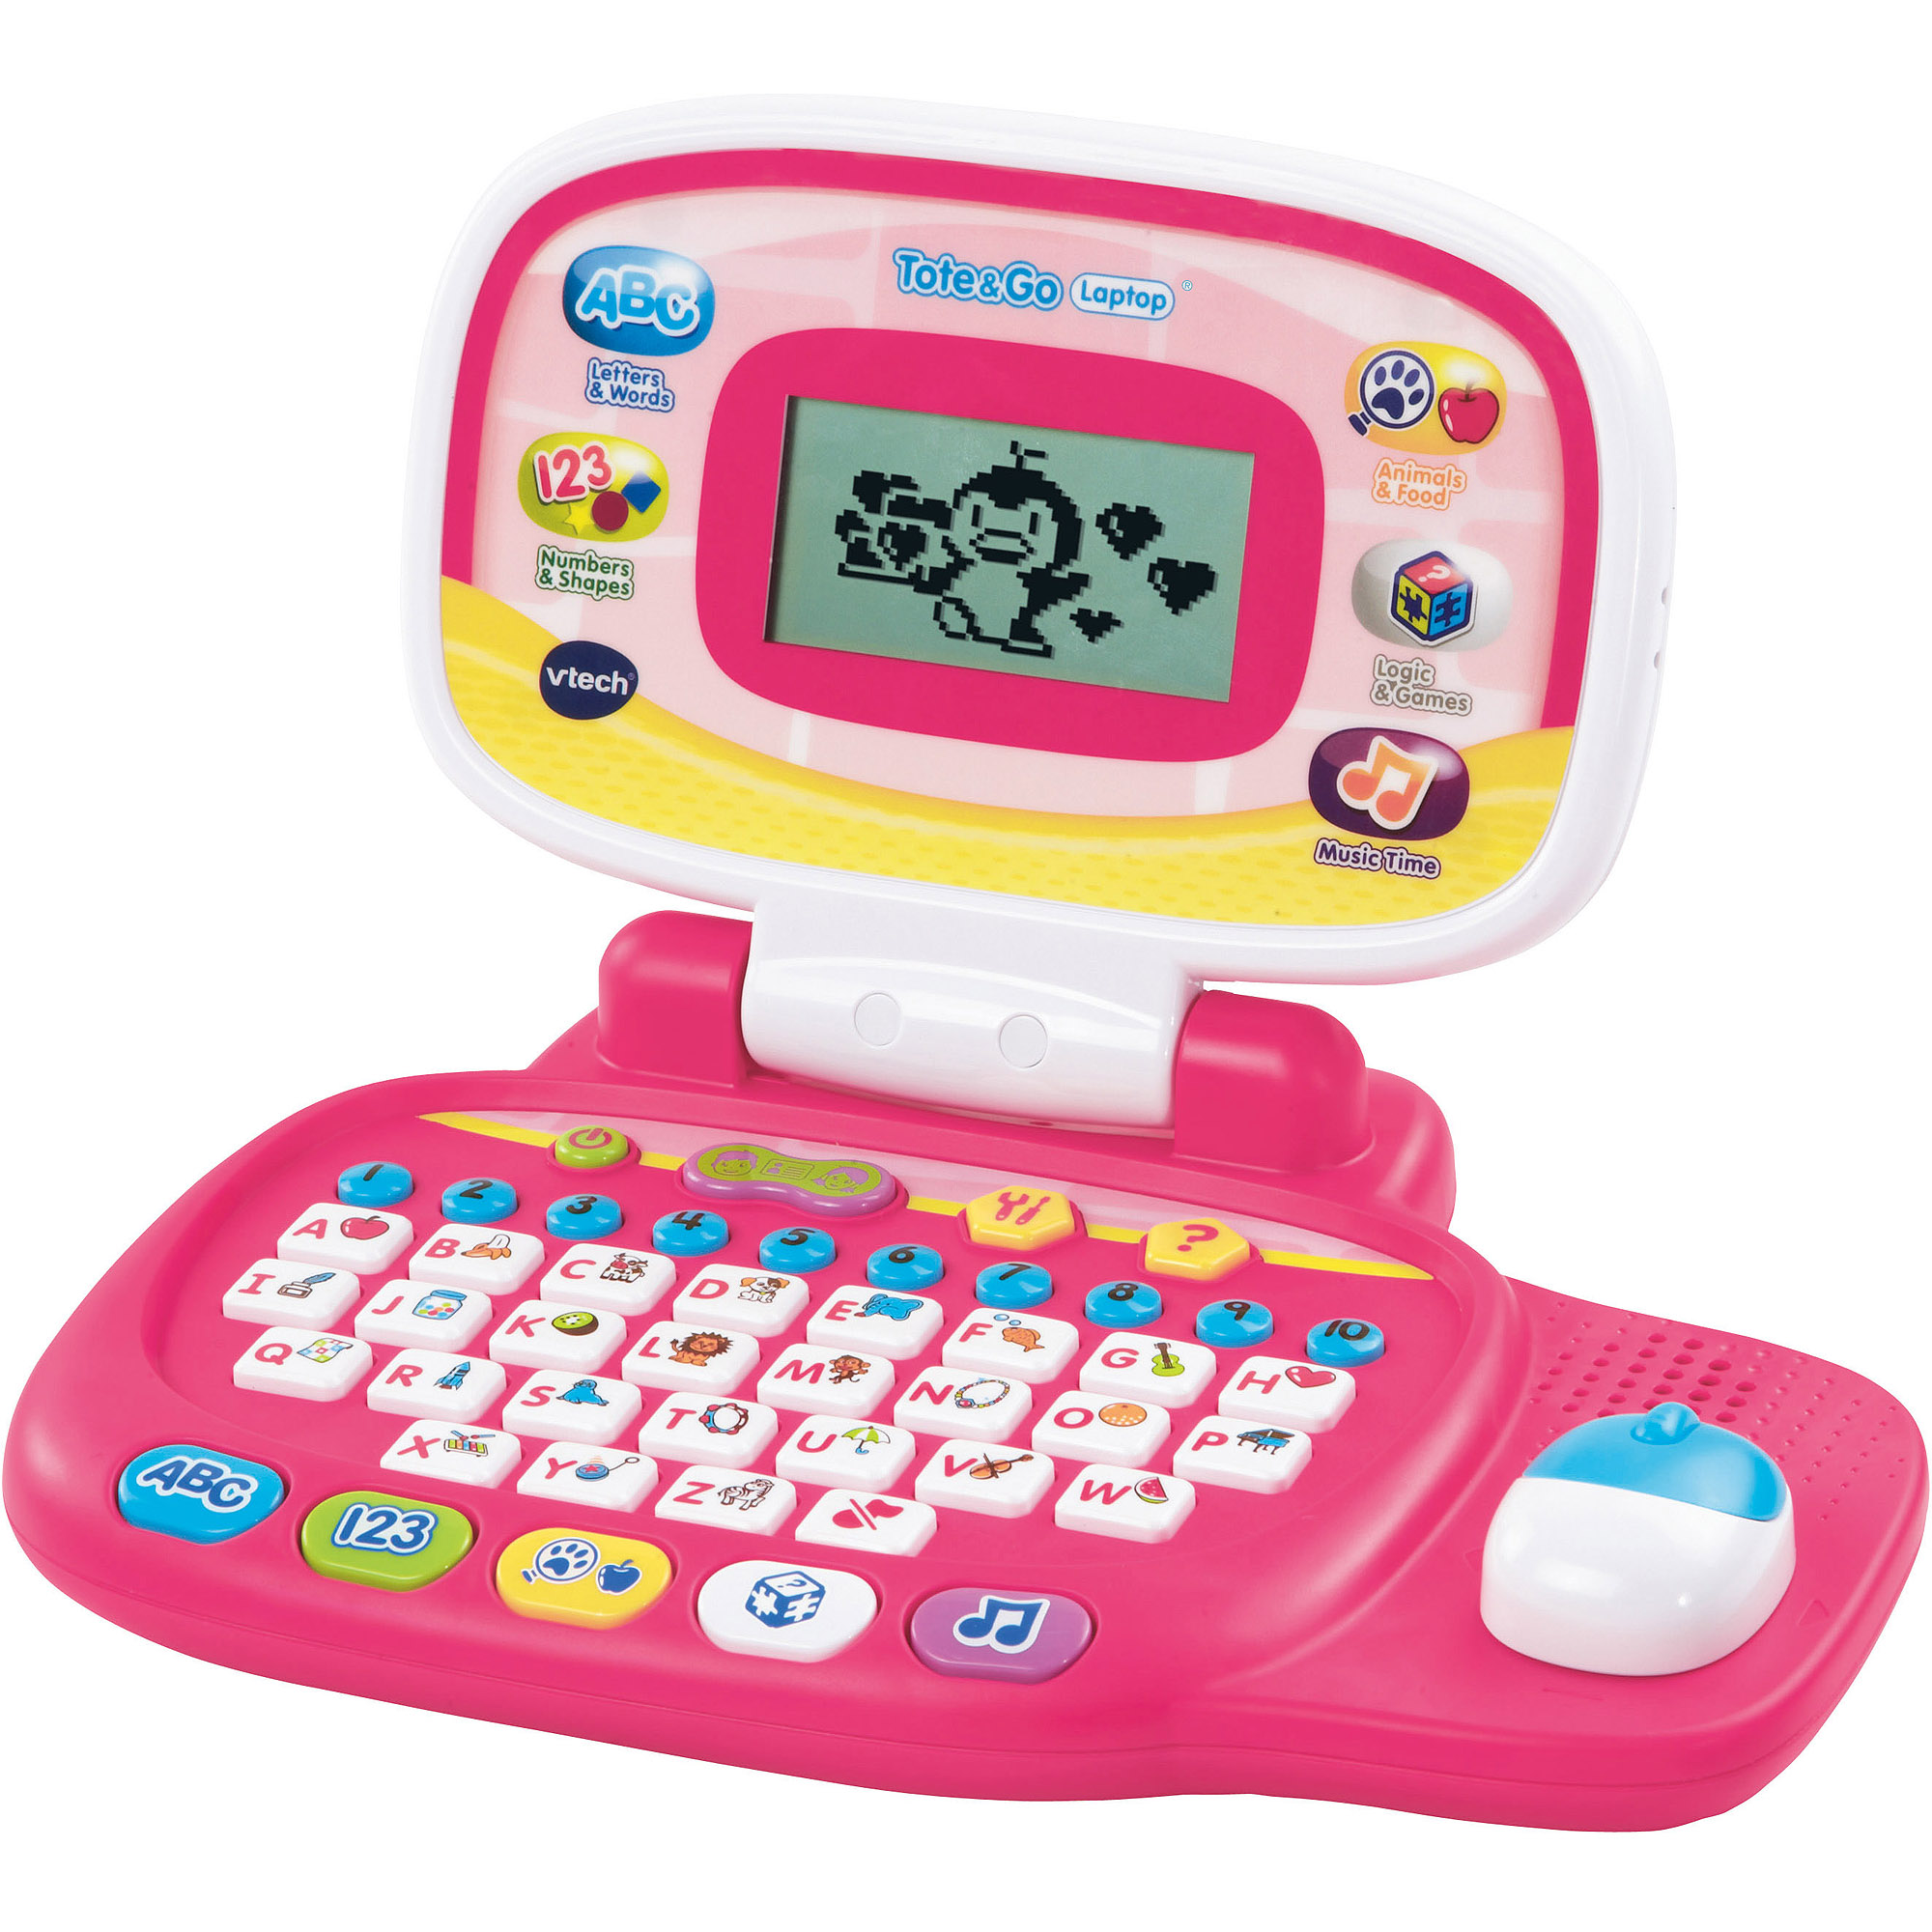 VTech Tote & Go Laptop, Pink